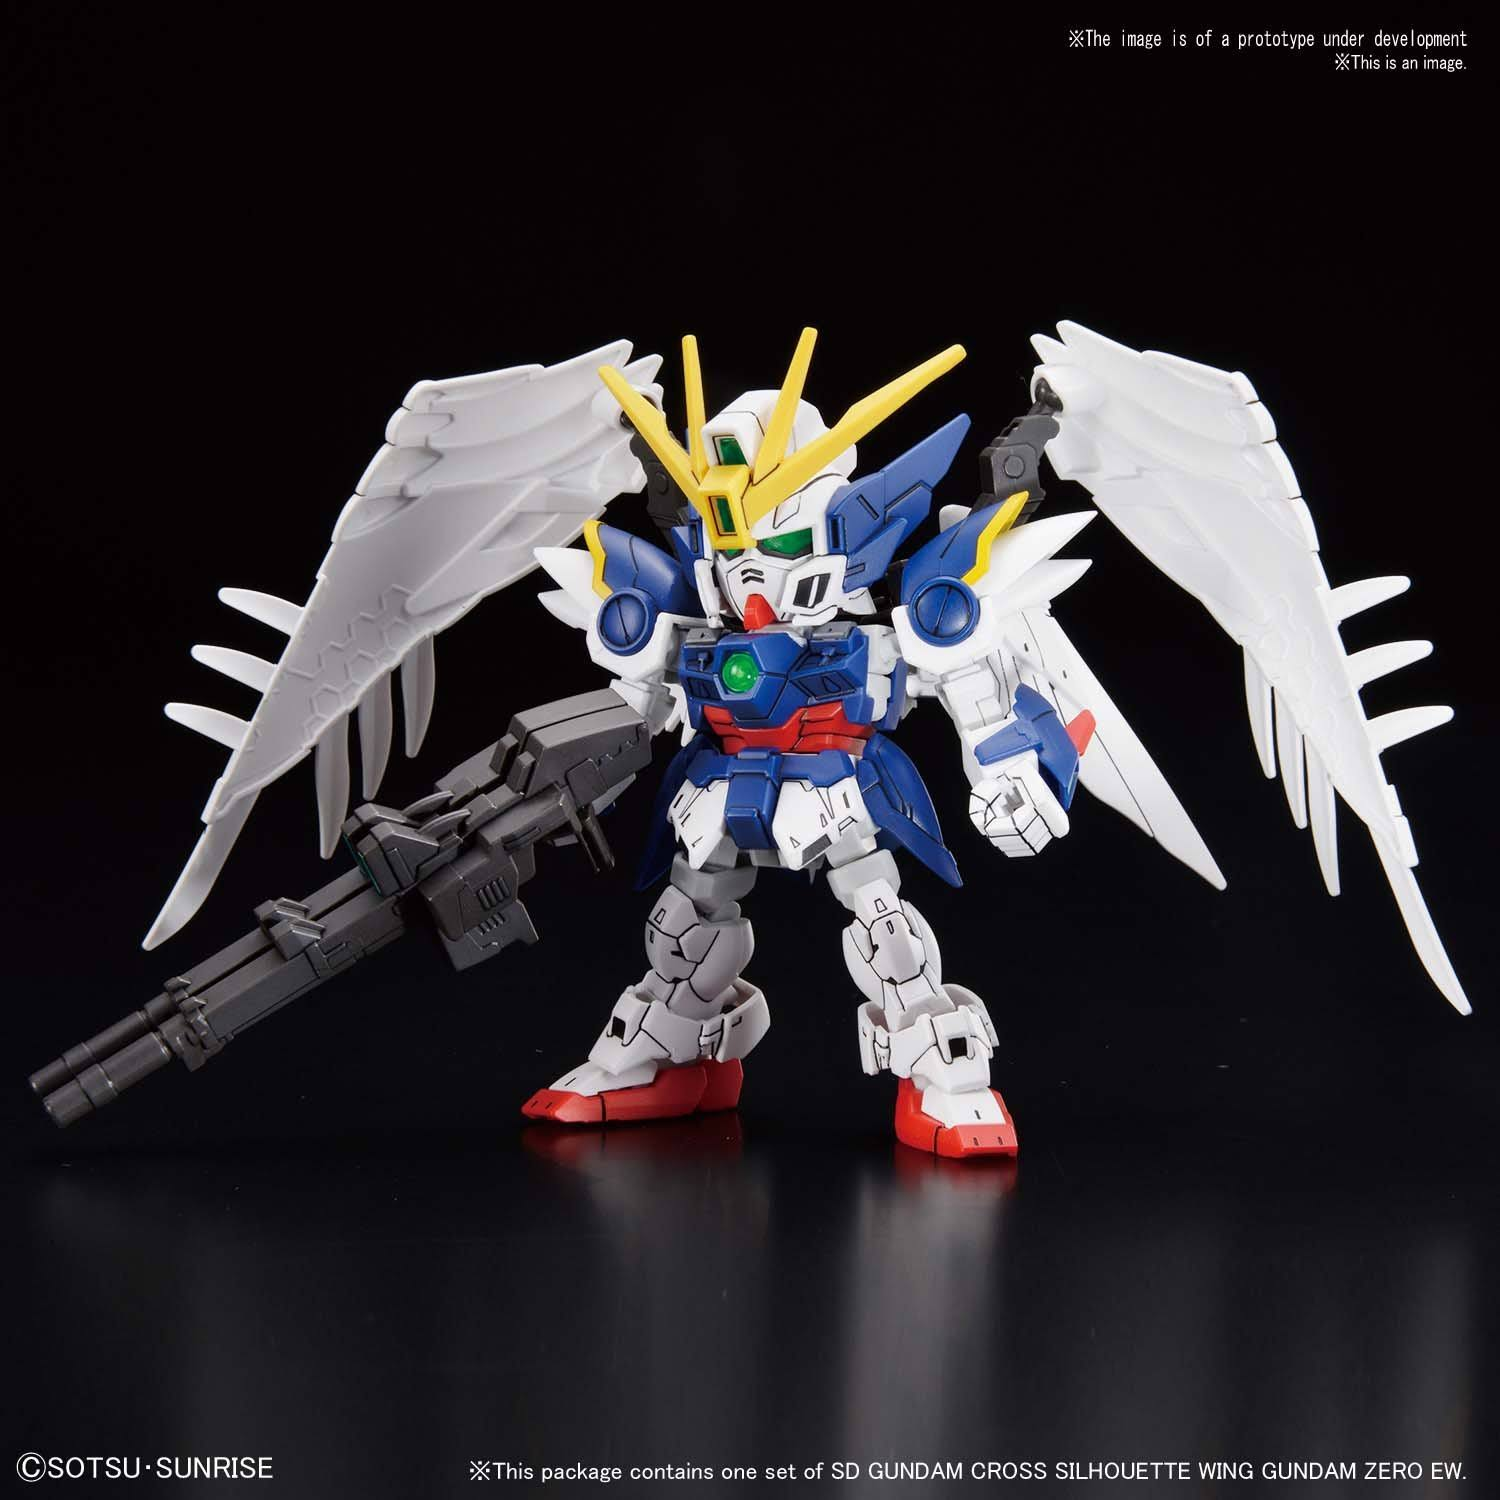 Bandai Gundam Wing: Endless Waltz 13 Zero SDCS Model Kit